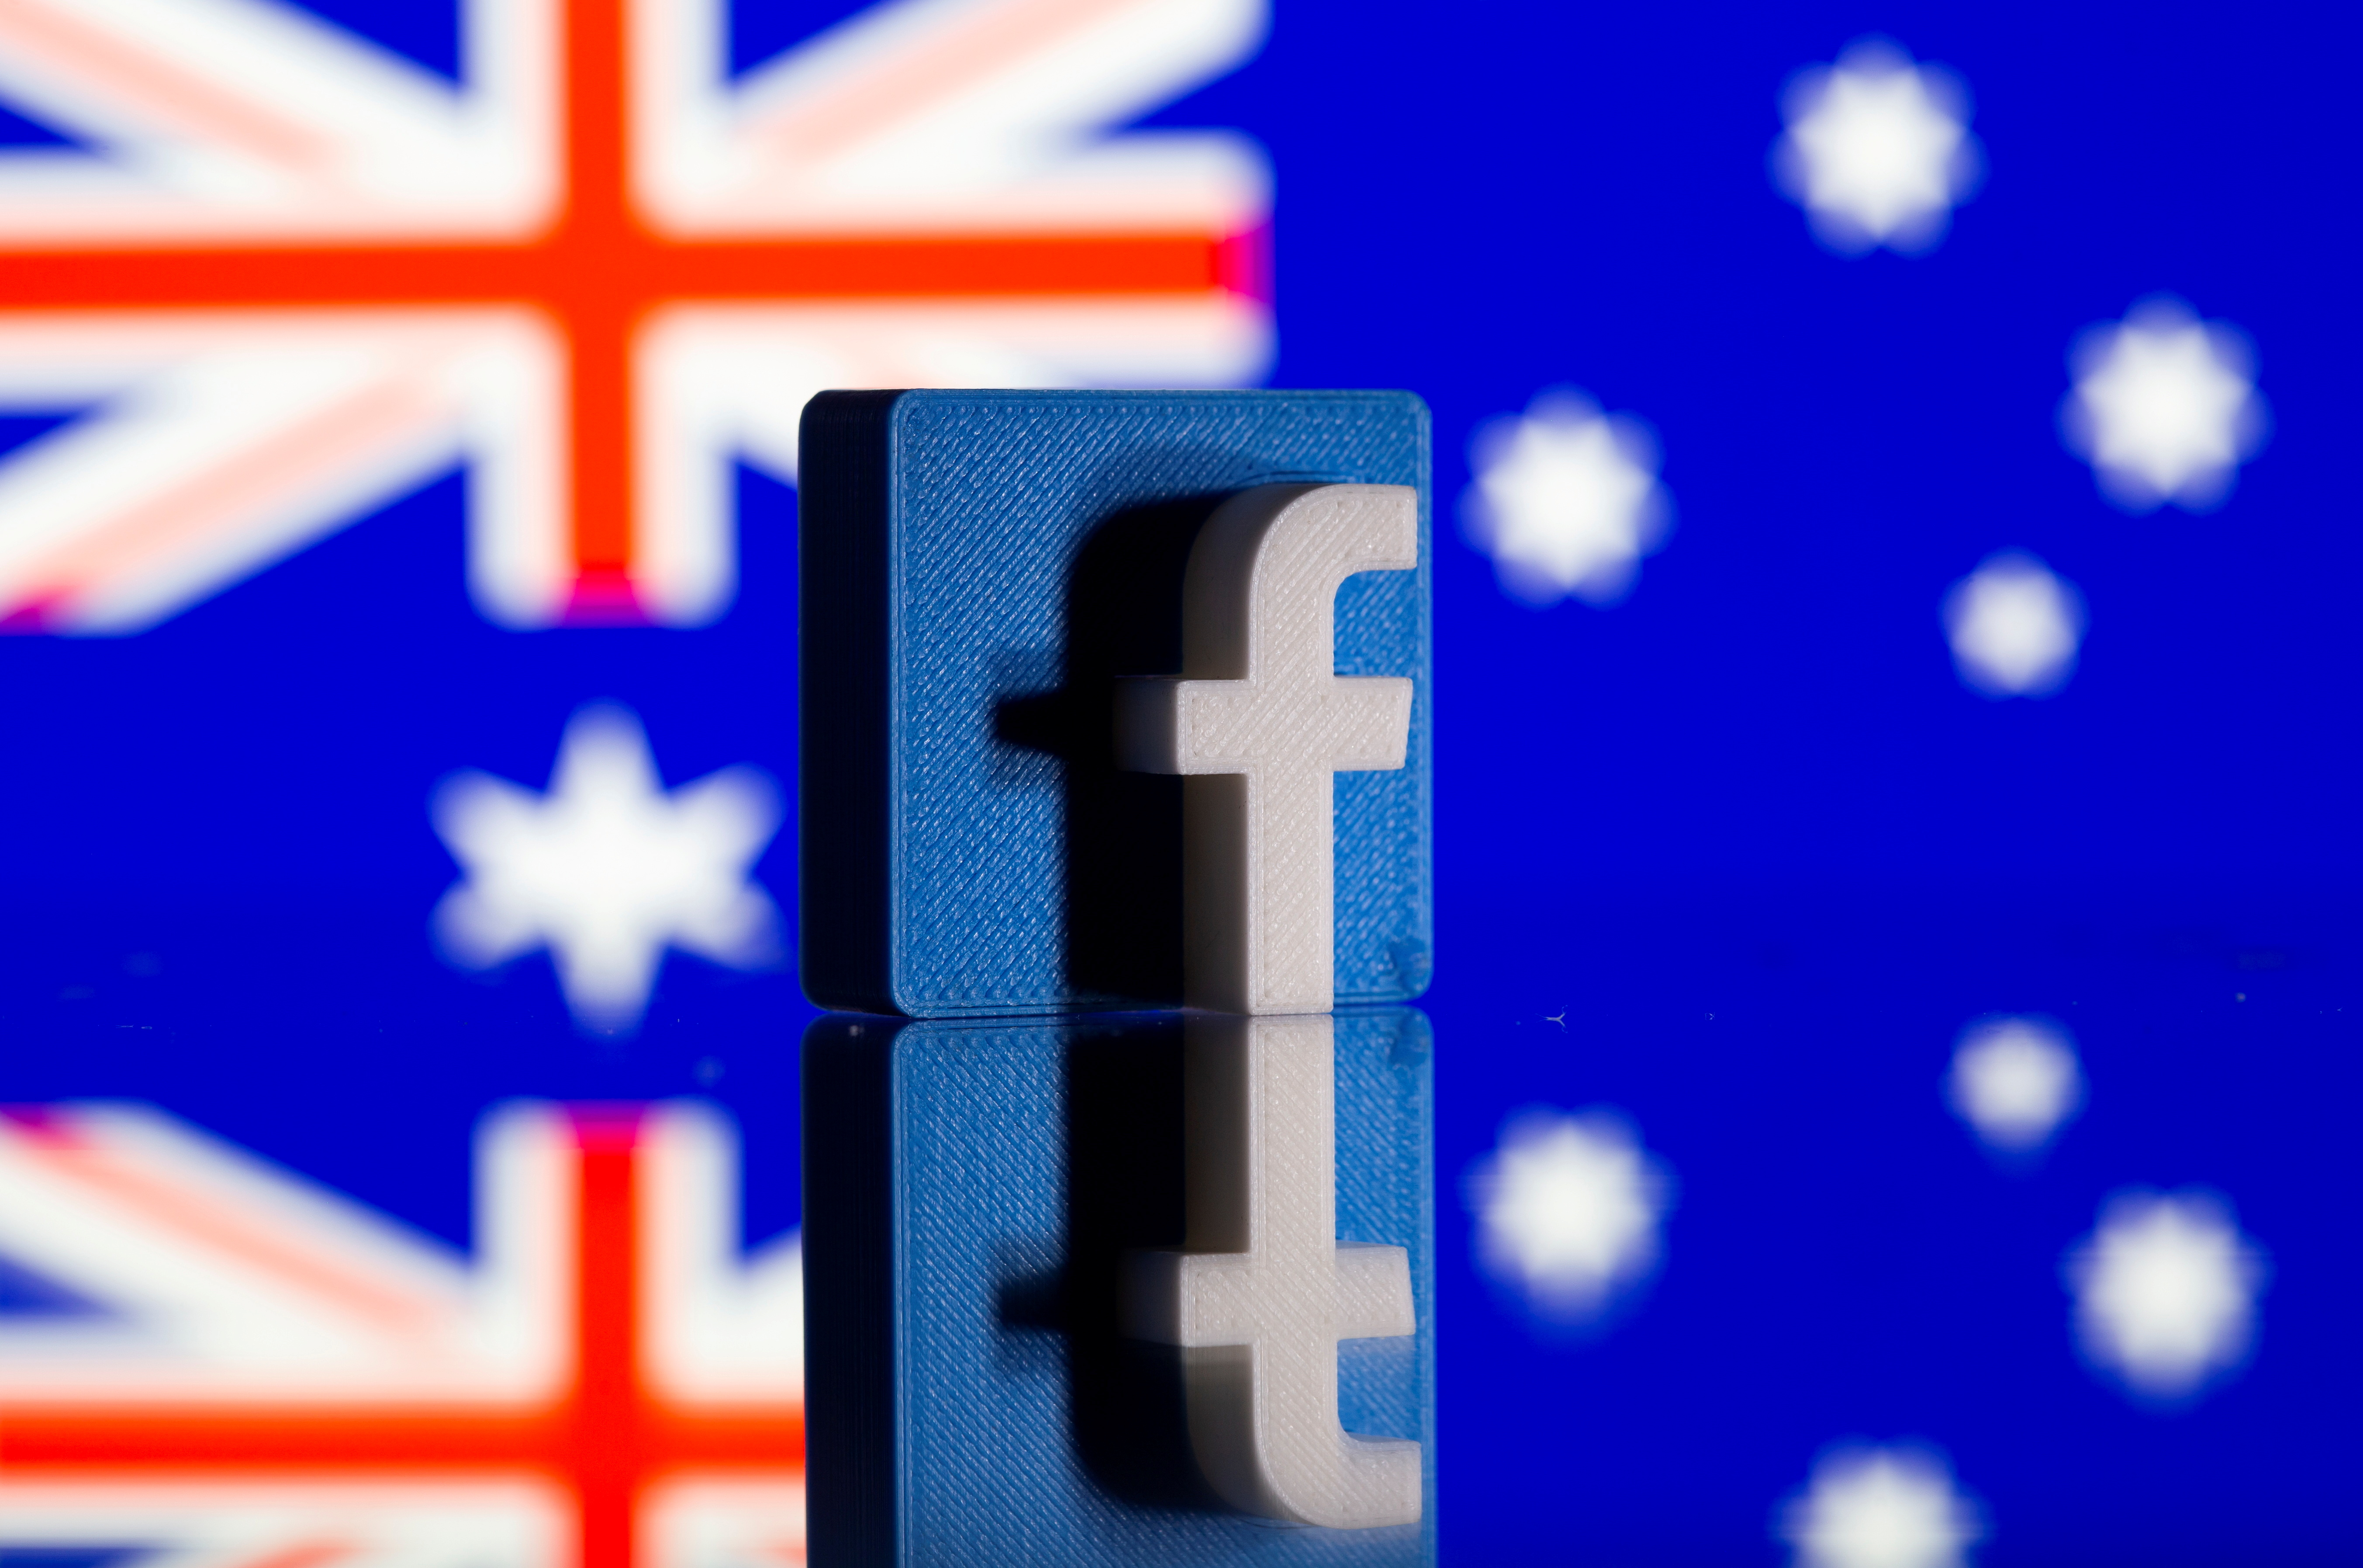 A 3D-printed Facebook logo is seen in front of a displayed Australian flag in this illustration photo taken February 18, 2021. REUTERS/Dado Ruvic/Illustration/File Photo